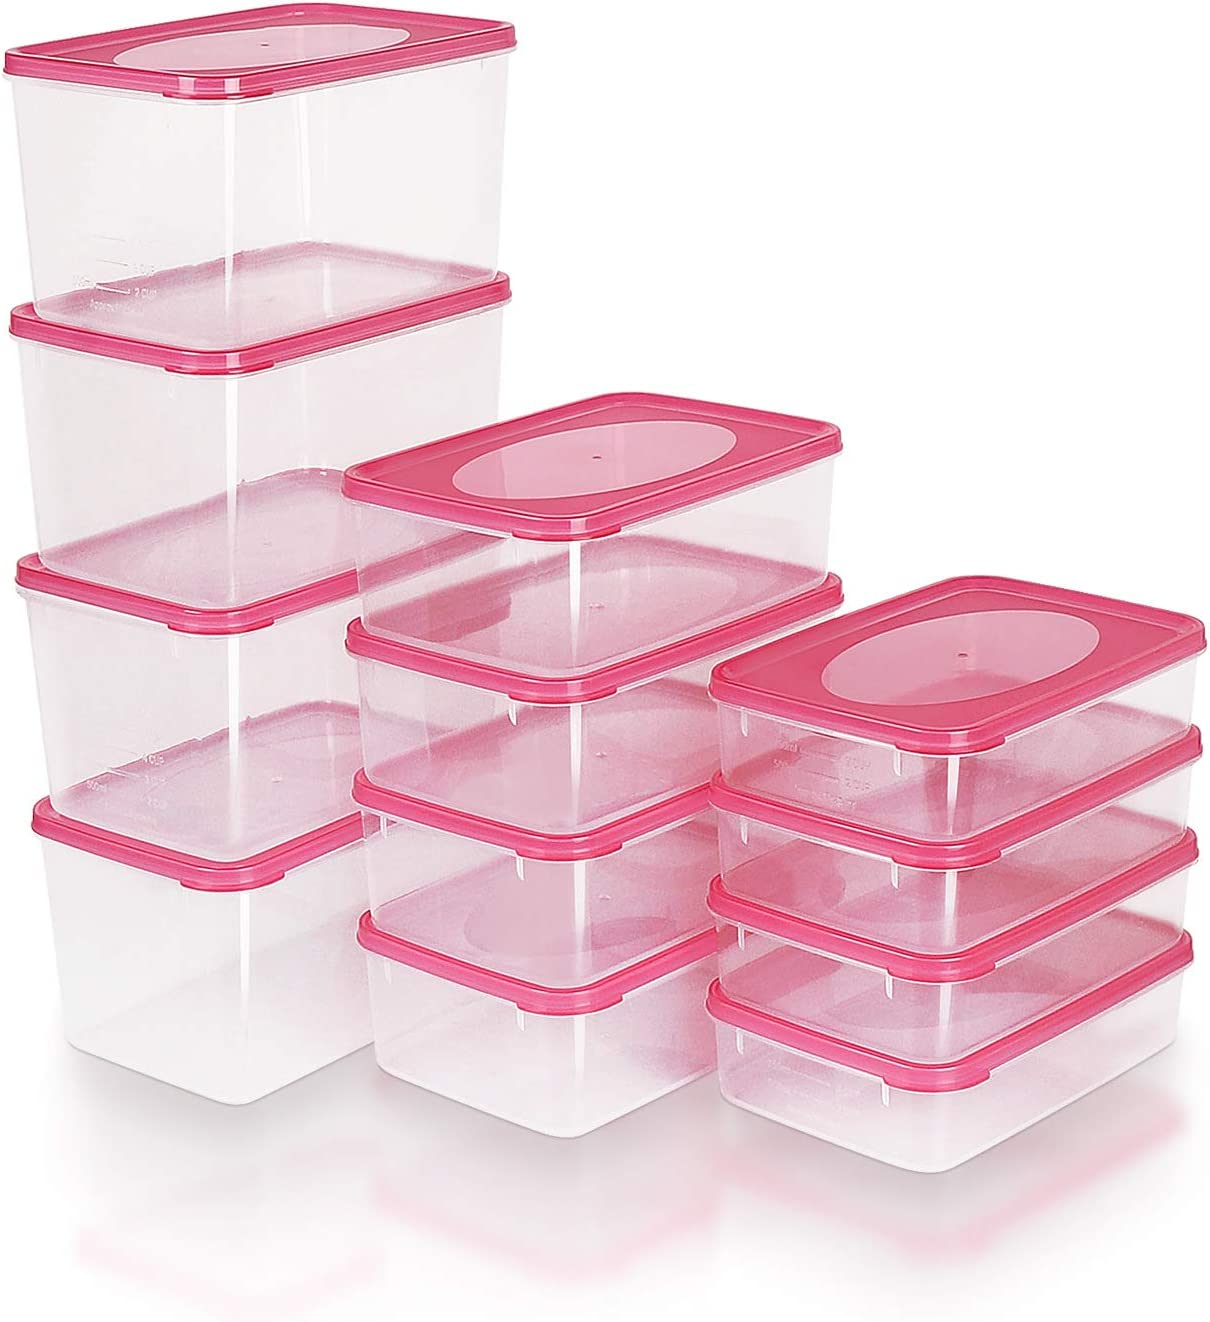 Mengico Food Storage Containers With Lids, Plastic Food Containers Meal Prep, BPA-free, Pink,Set of 12 (24 Pieces Total),